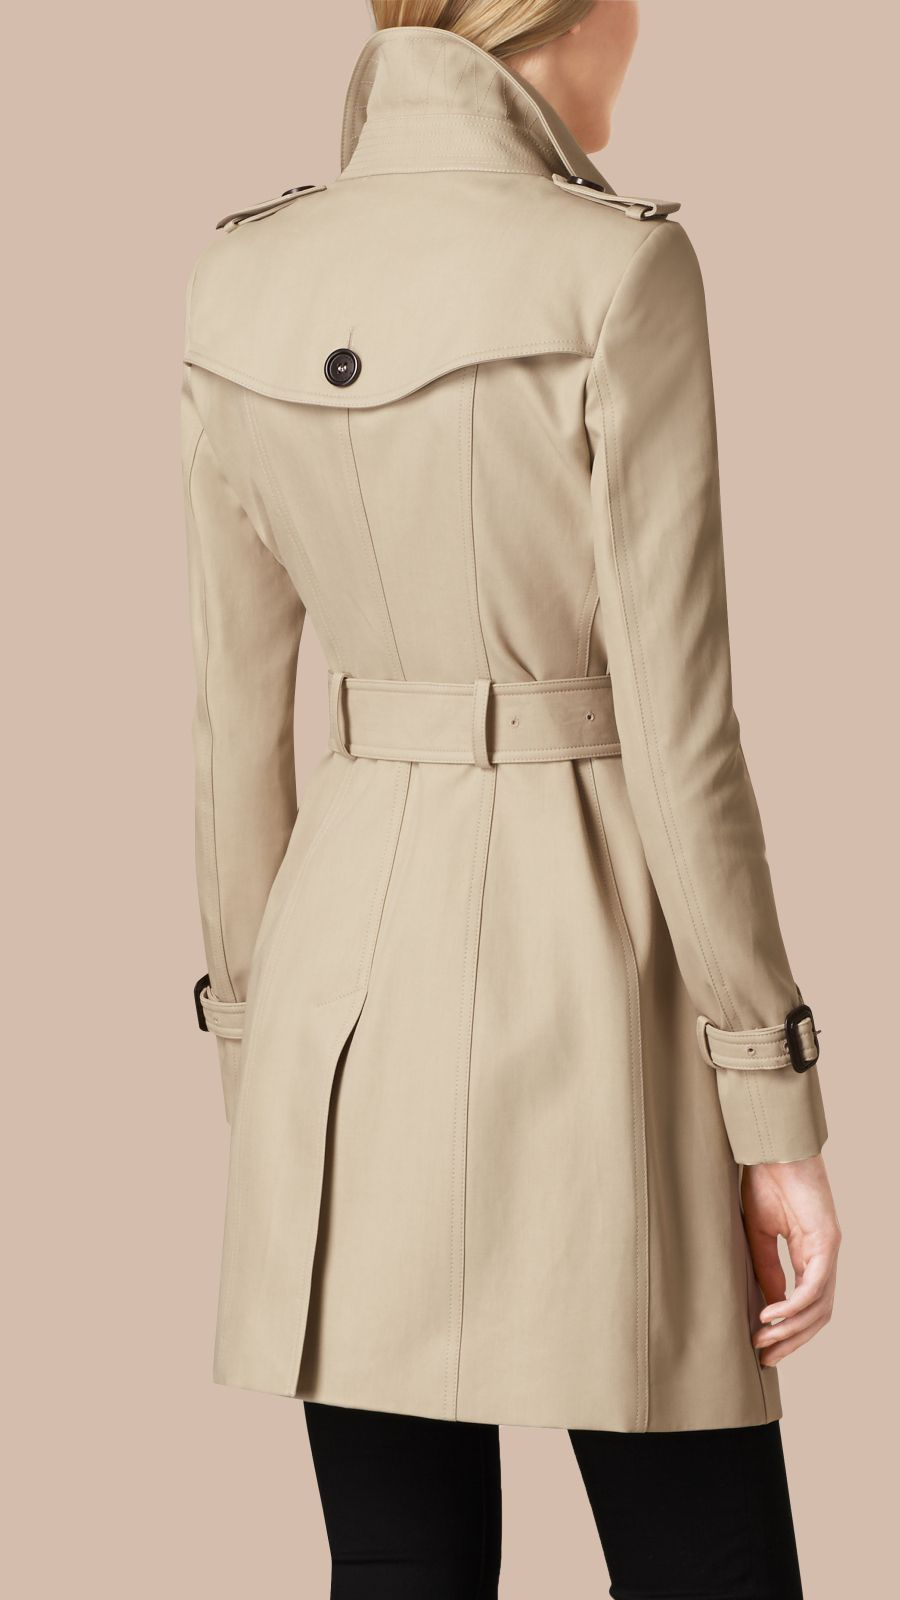 Trench Double Cotton Twill Trench Coat - Image 4